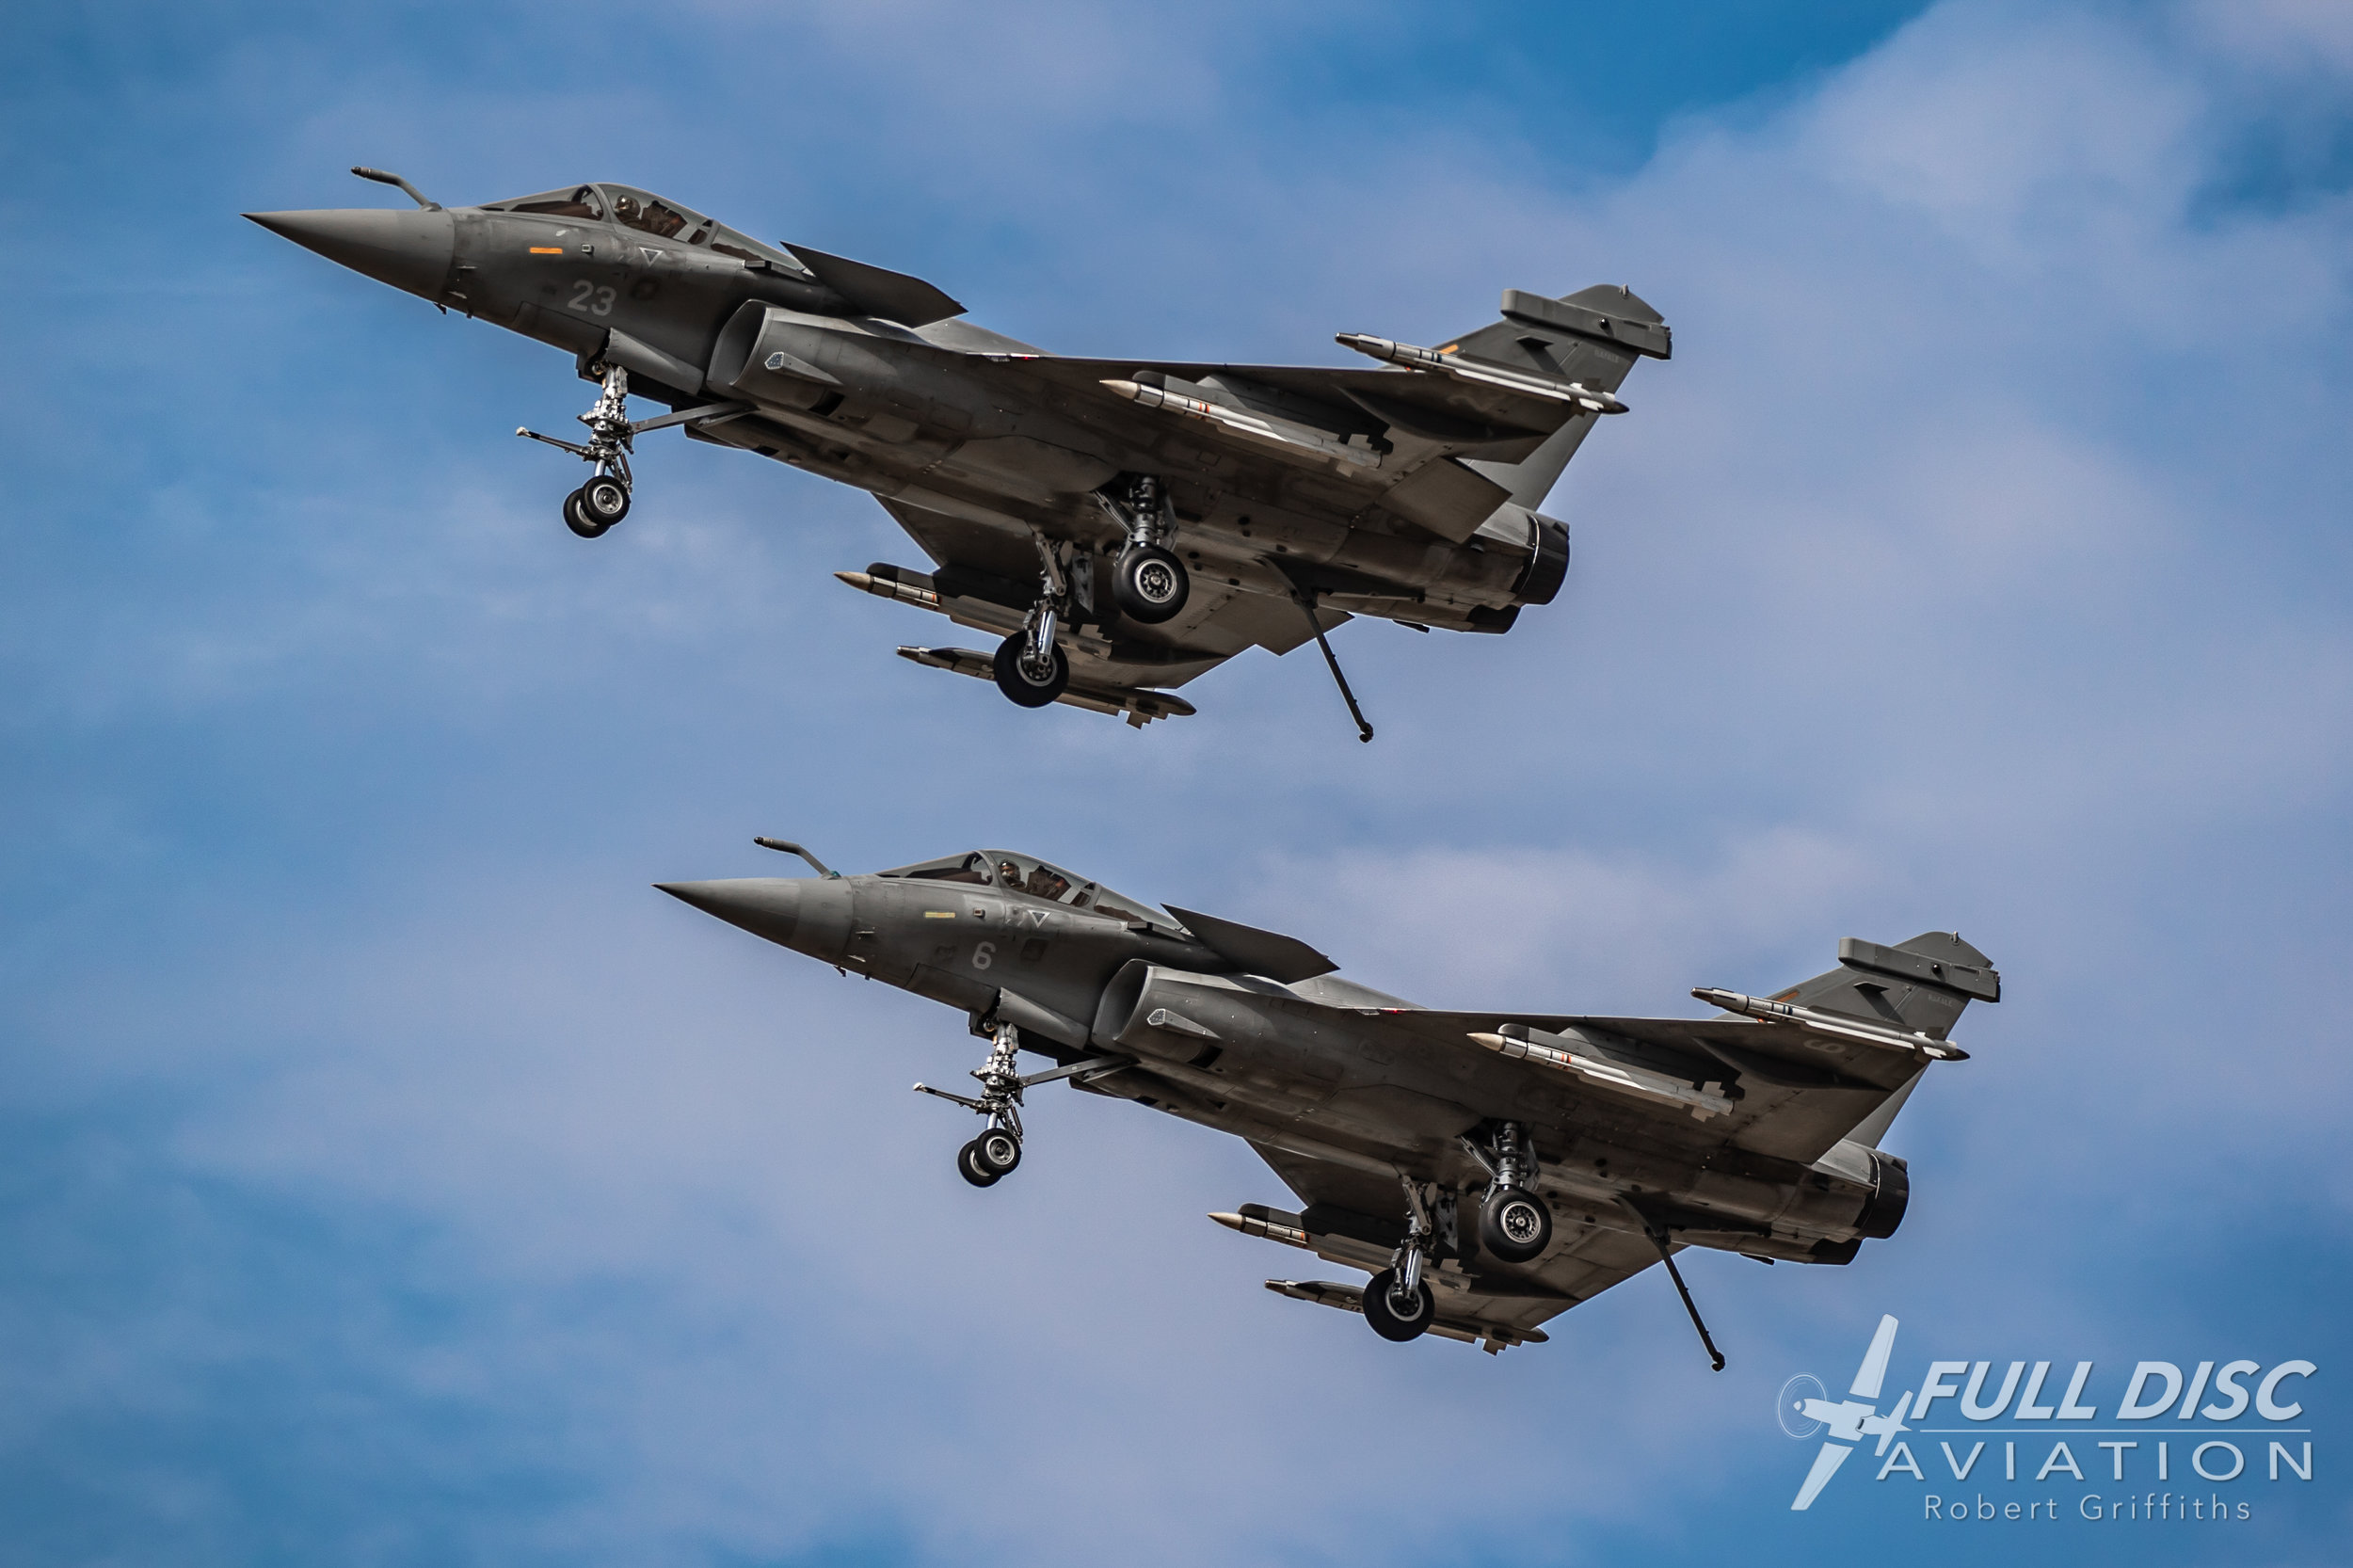 Robert Griffiths RIAT-July 13, 2018-34.jpg